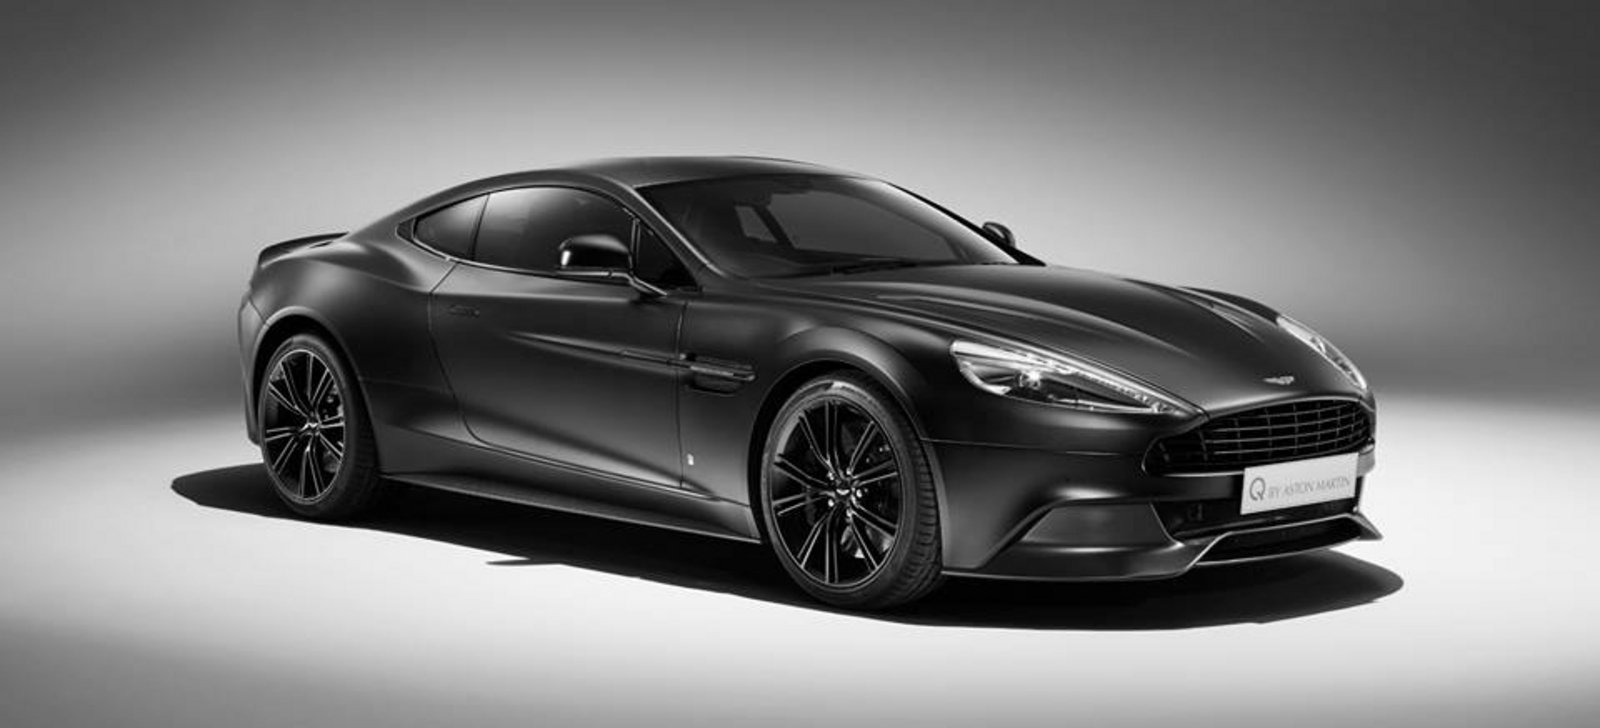 Aston Martin Vanquish Reviews Specs Prices Photos And Videos - Aston martin vanquish gt price